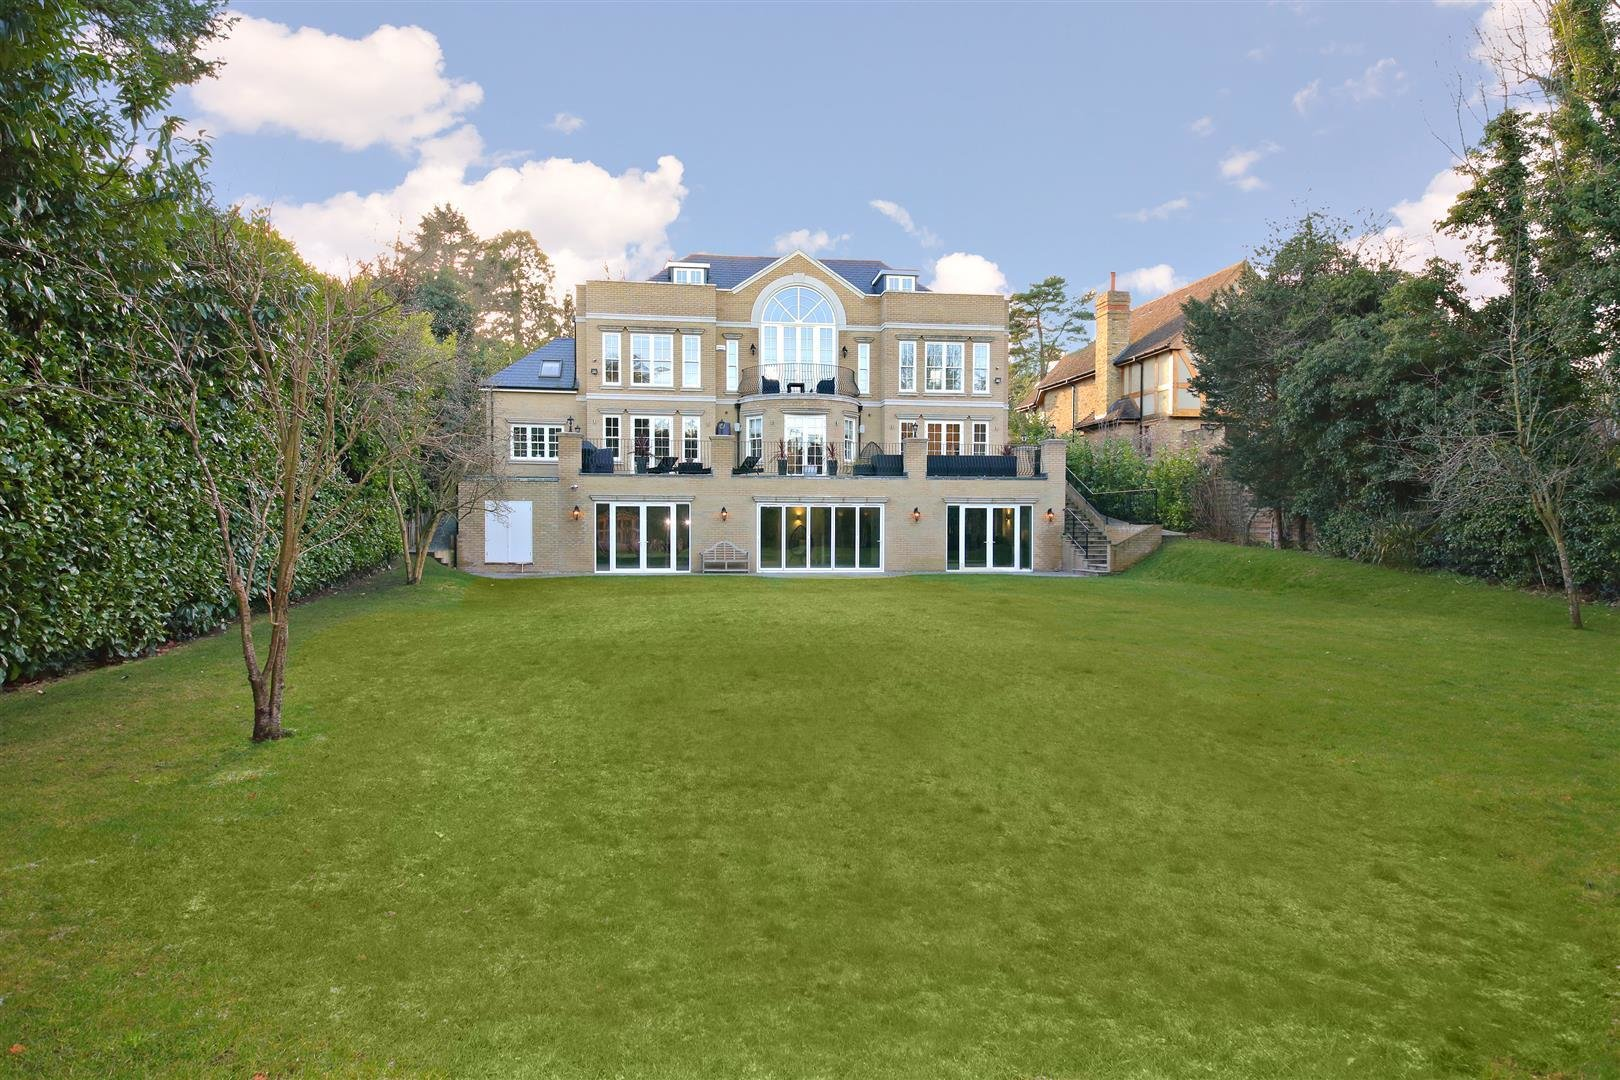 Best 7 Bedroom House For Sale In Radlett With Pictures